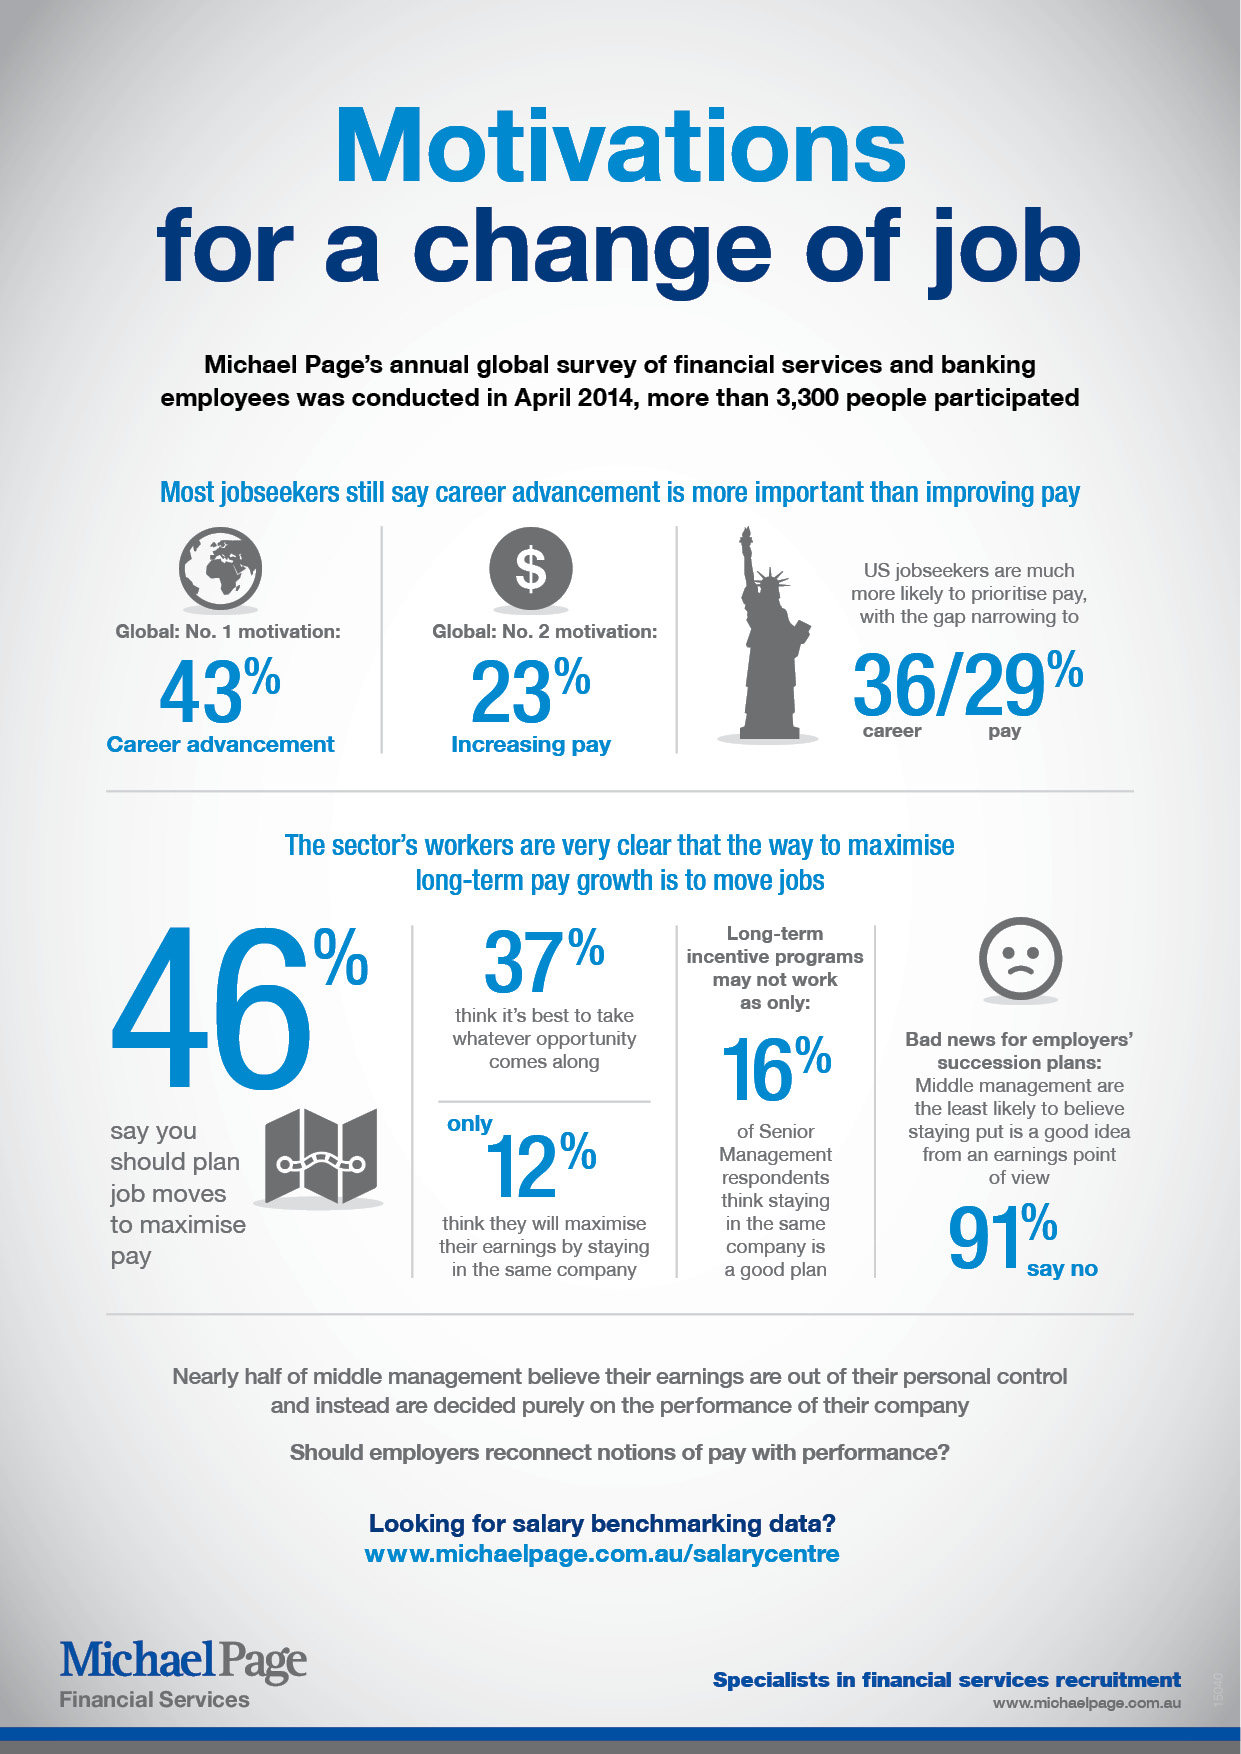 Motivations for a change of job